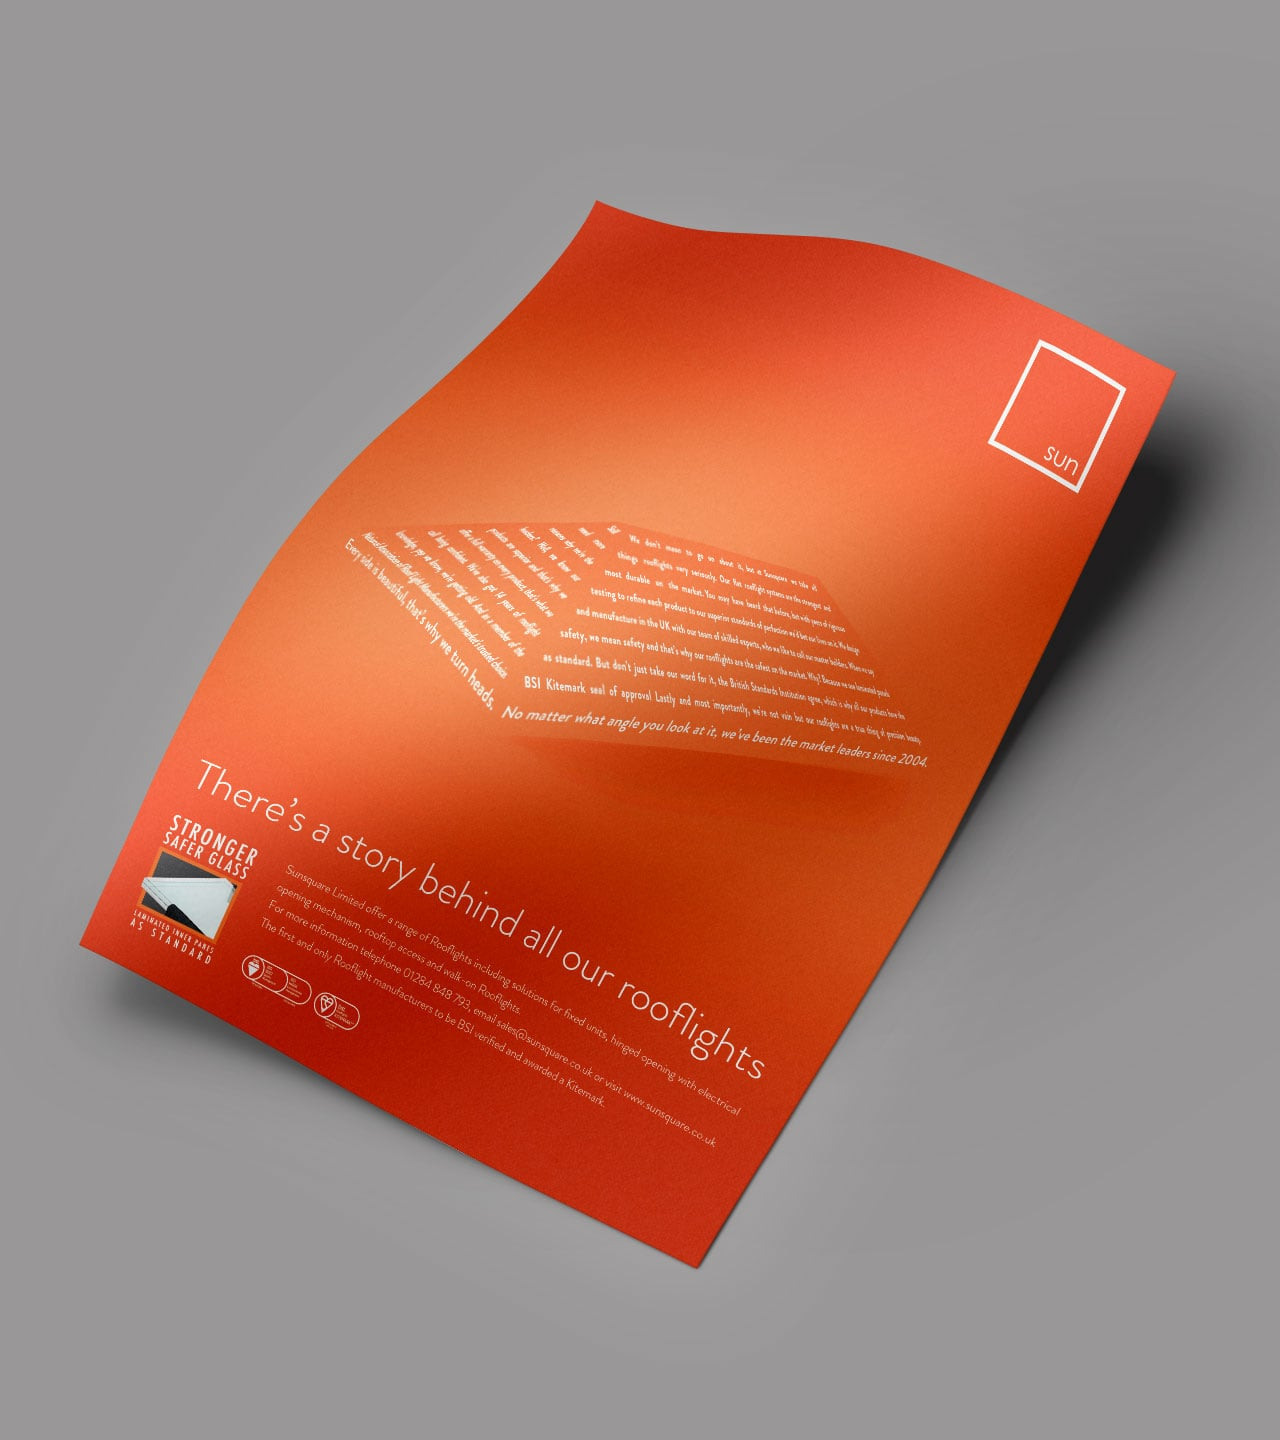 Sun square poster mock-up print design